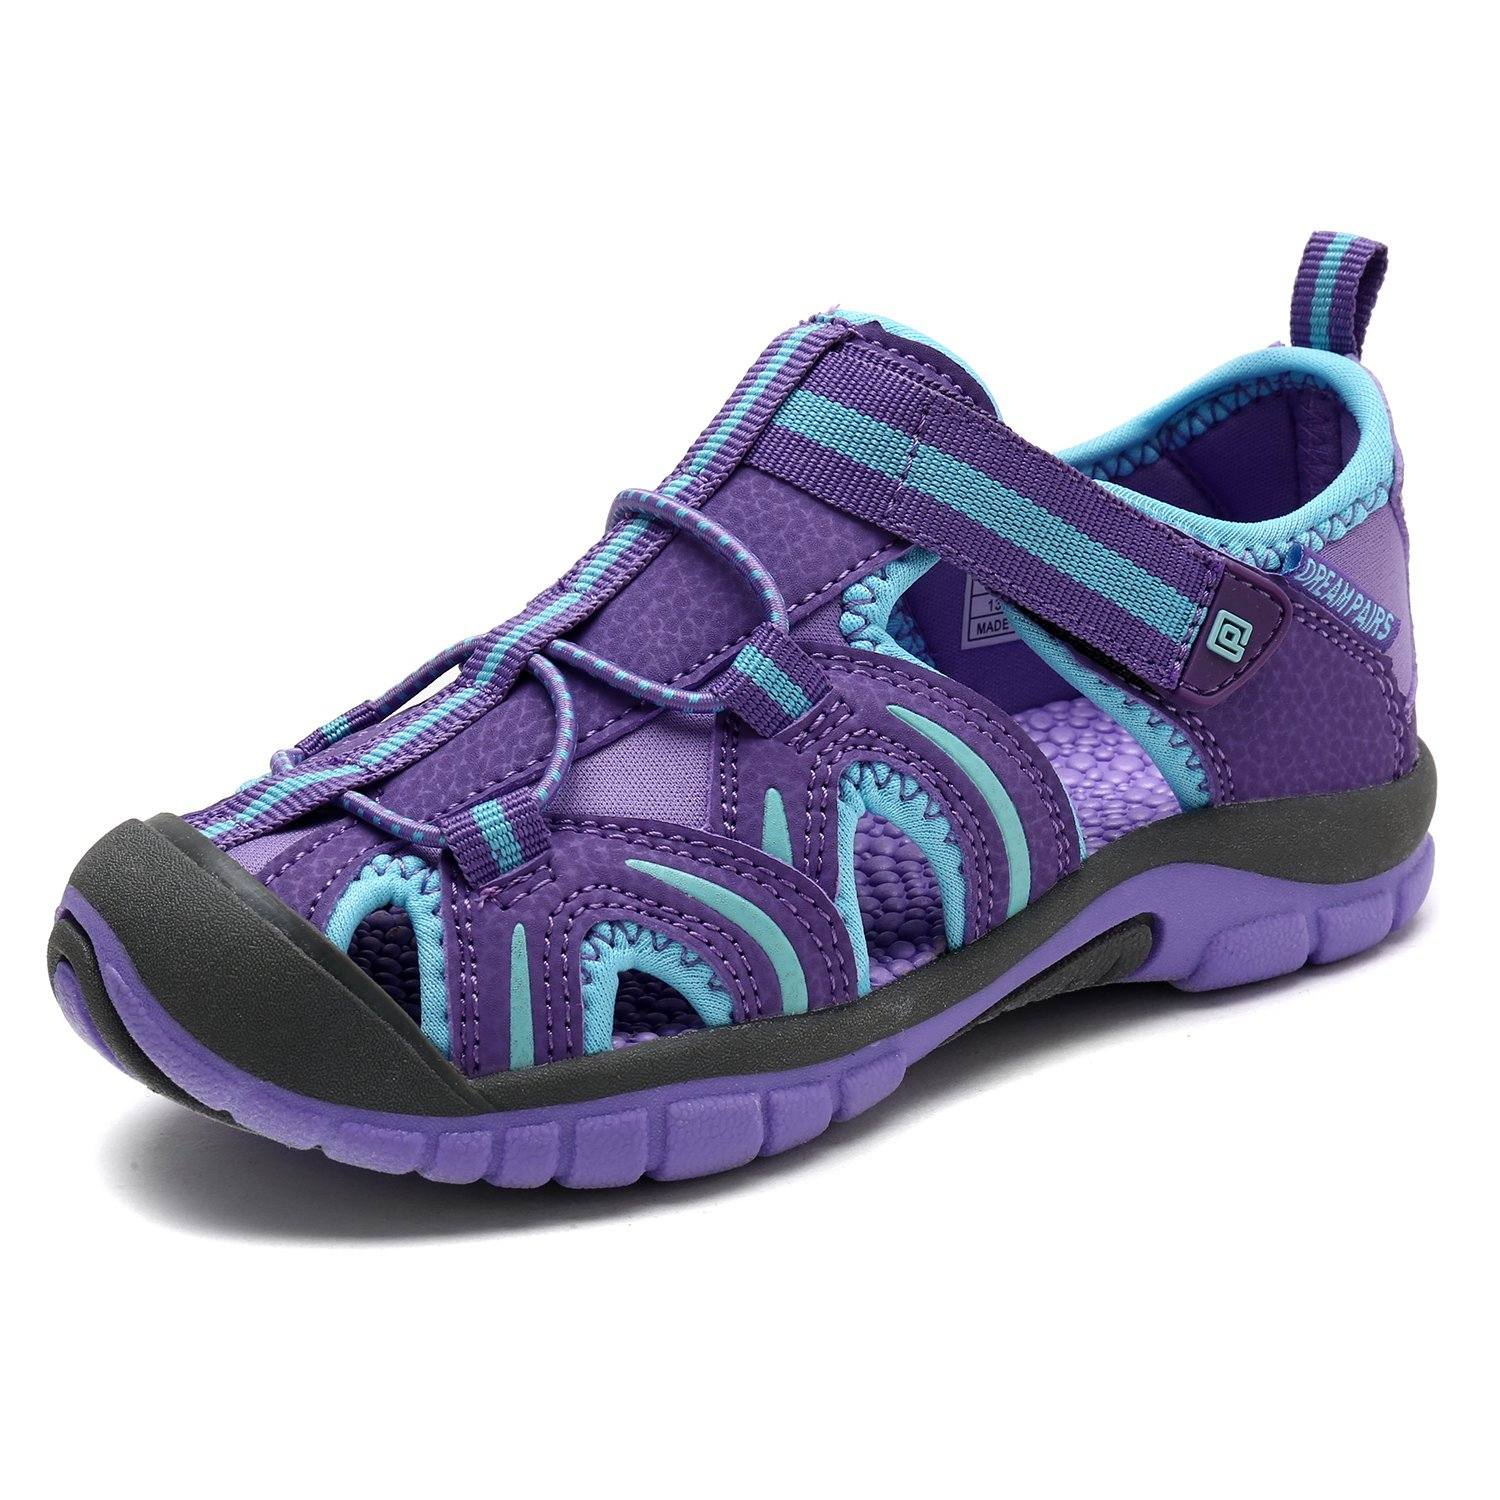 DREAM PAIRS Little Kid 171112-K Lavender W.Blue Outdoor Summer Sandals Size 13 M US Little Kid